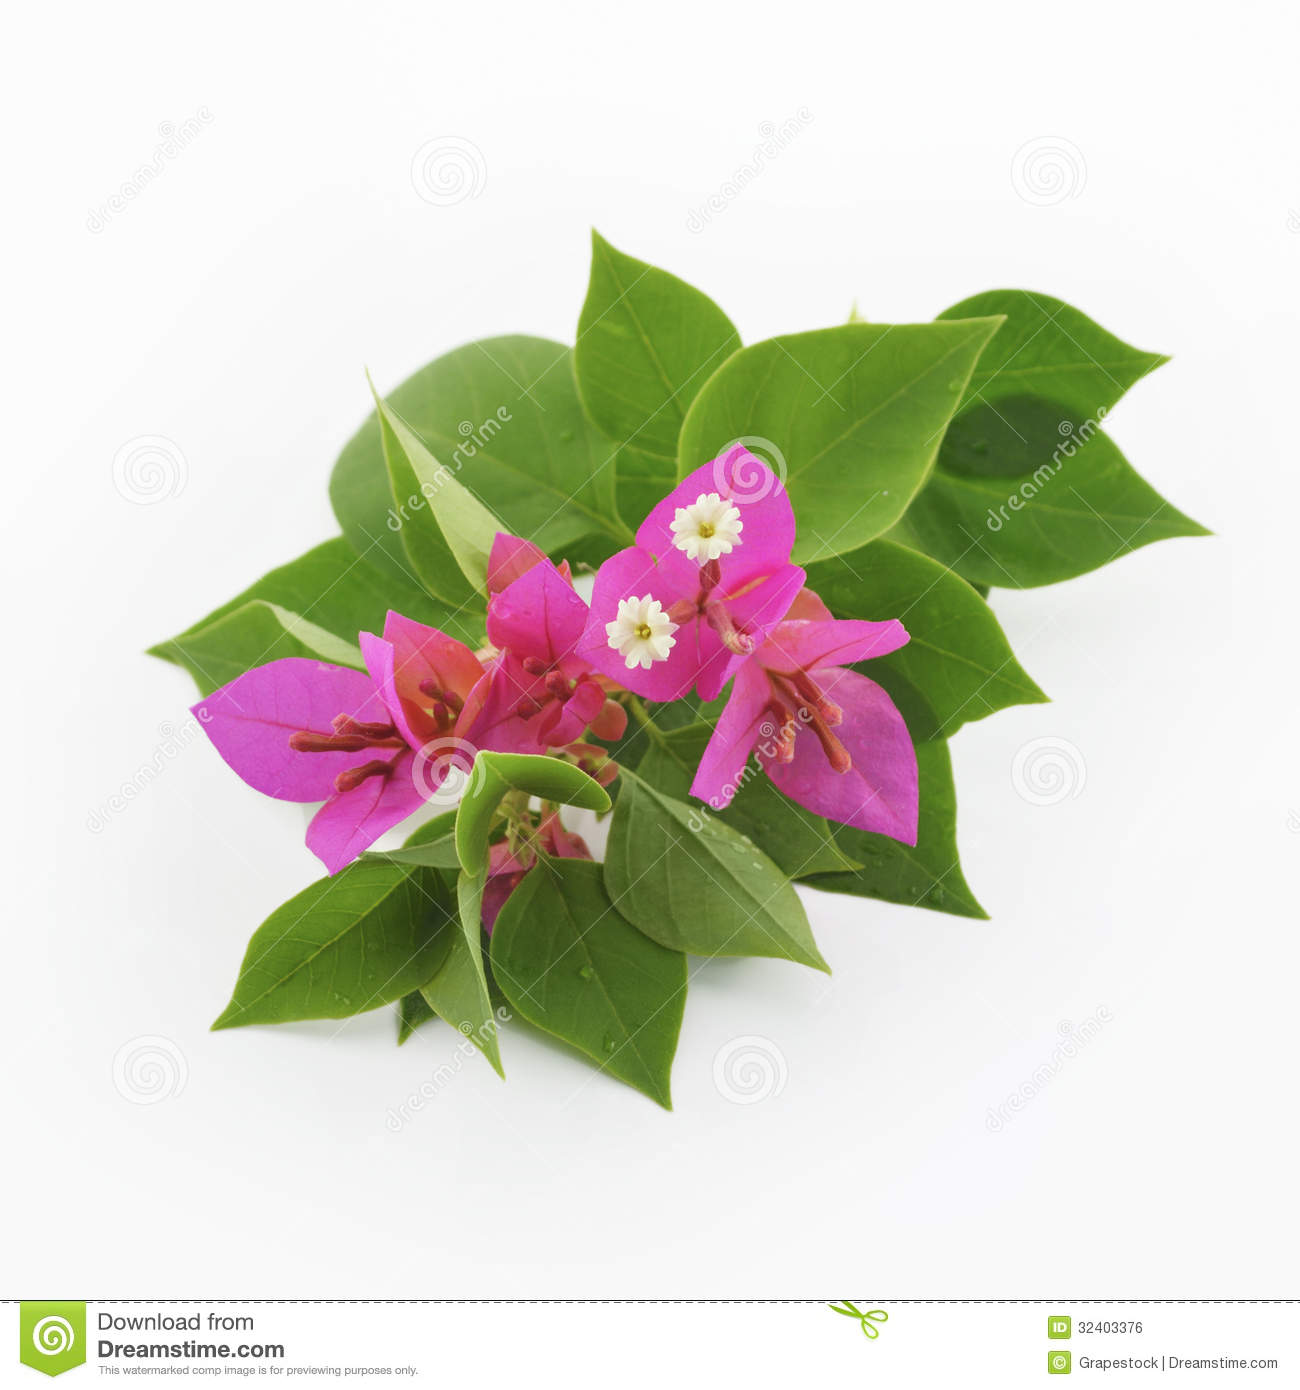 Bougainvillea Flowers Royalty Free Stock Image.